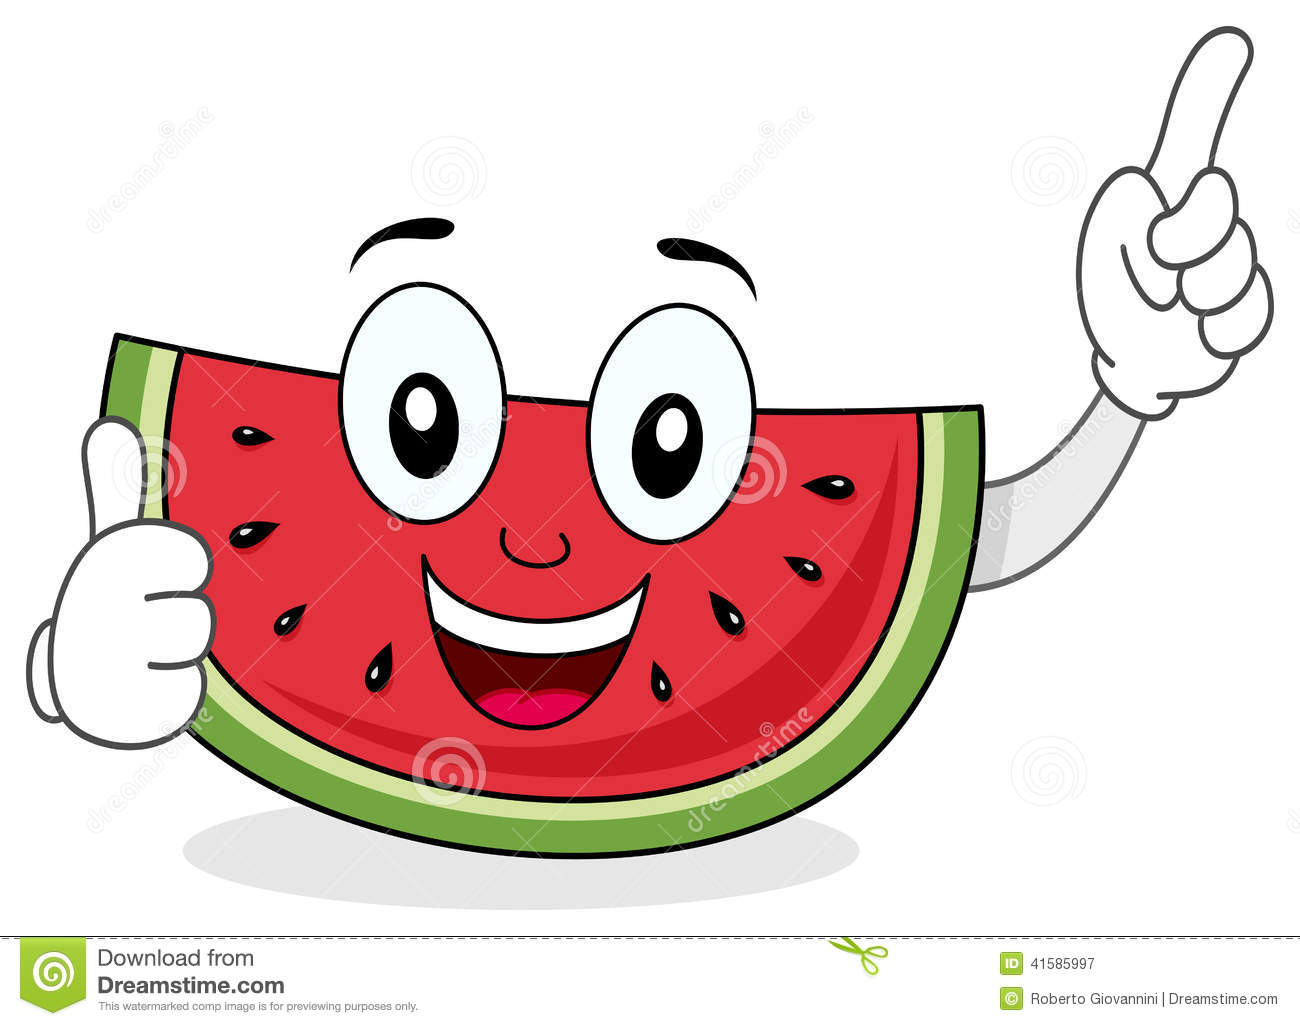 Watermelon Cartoon Images Happy Smiling Watermelon